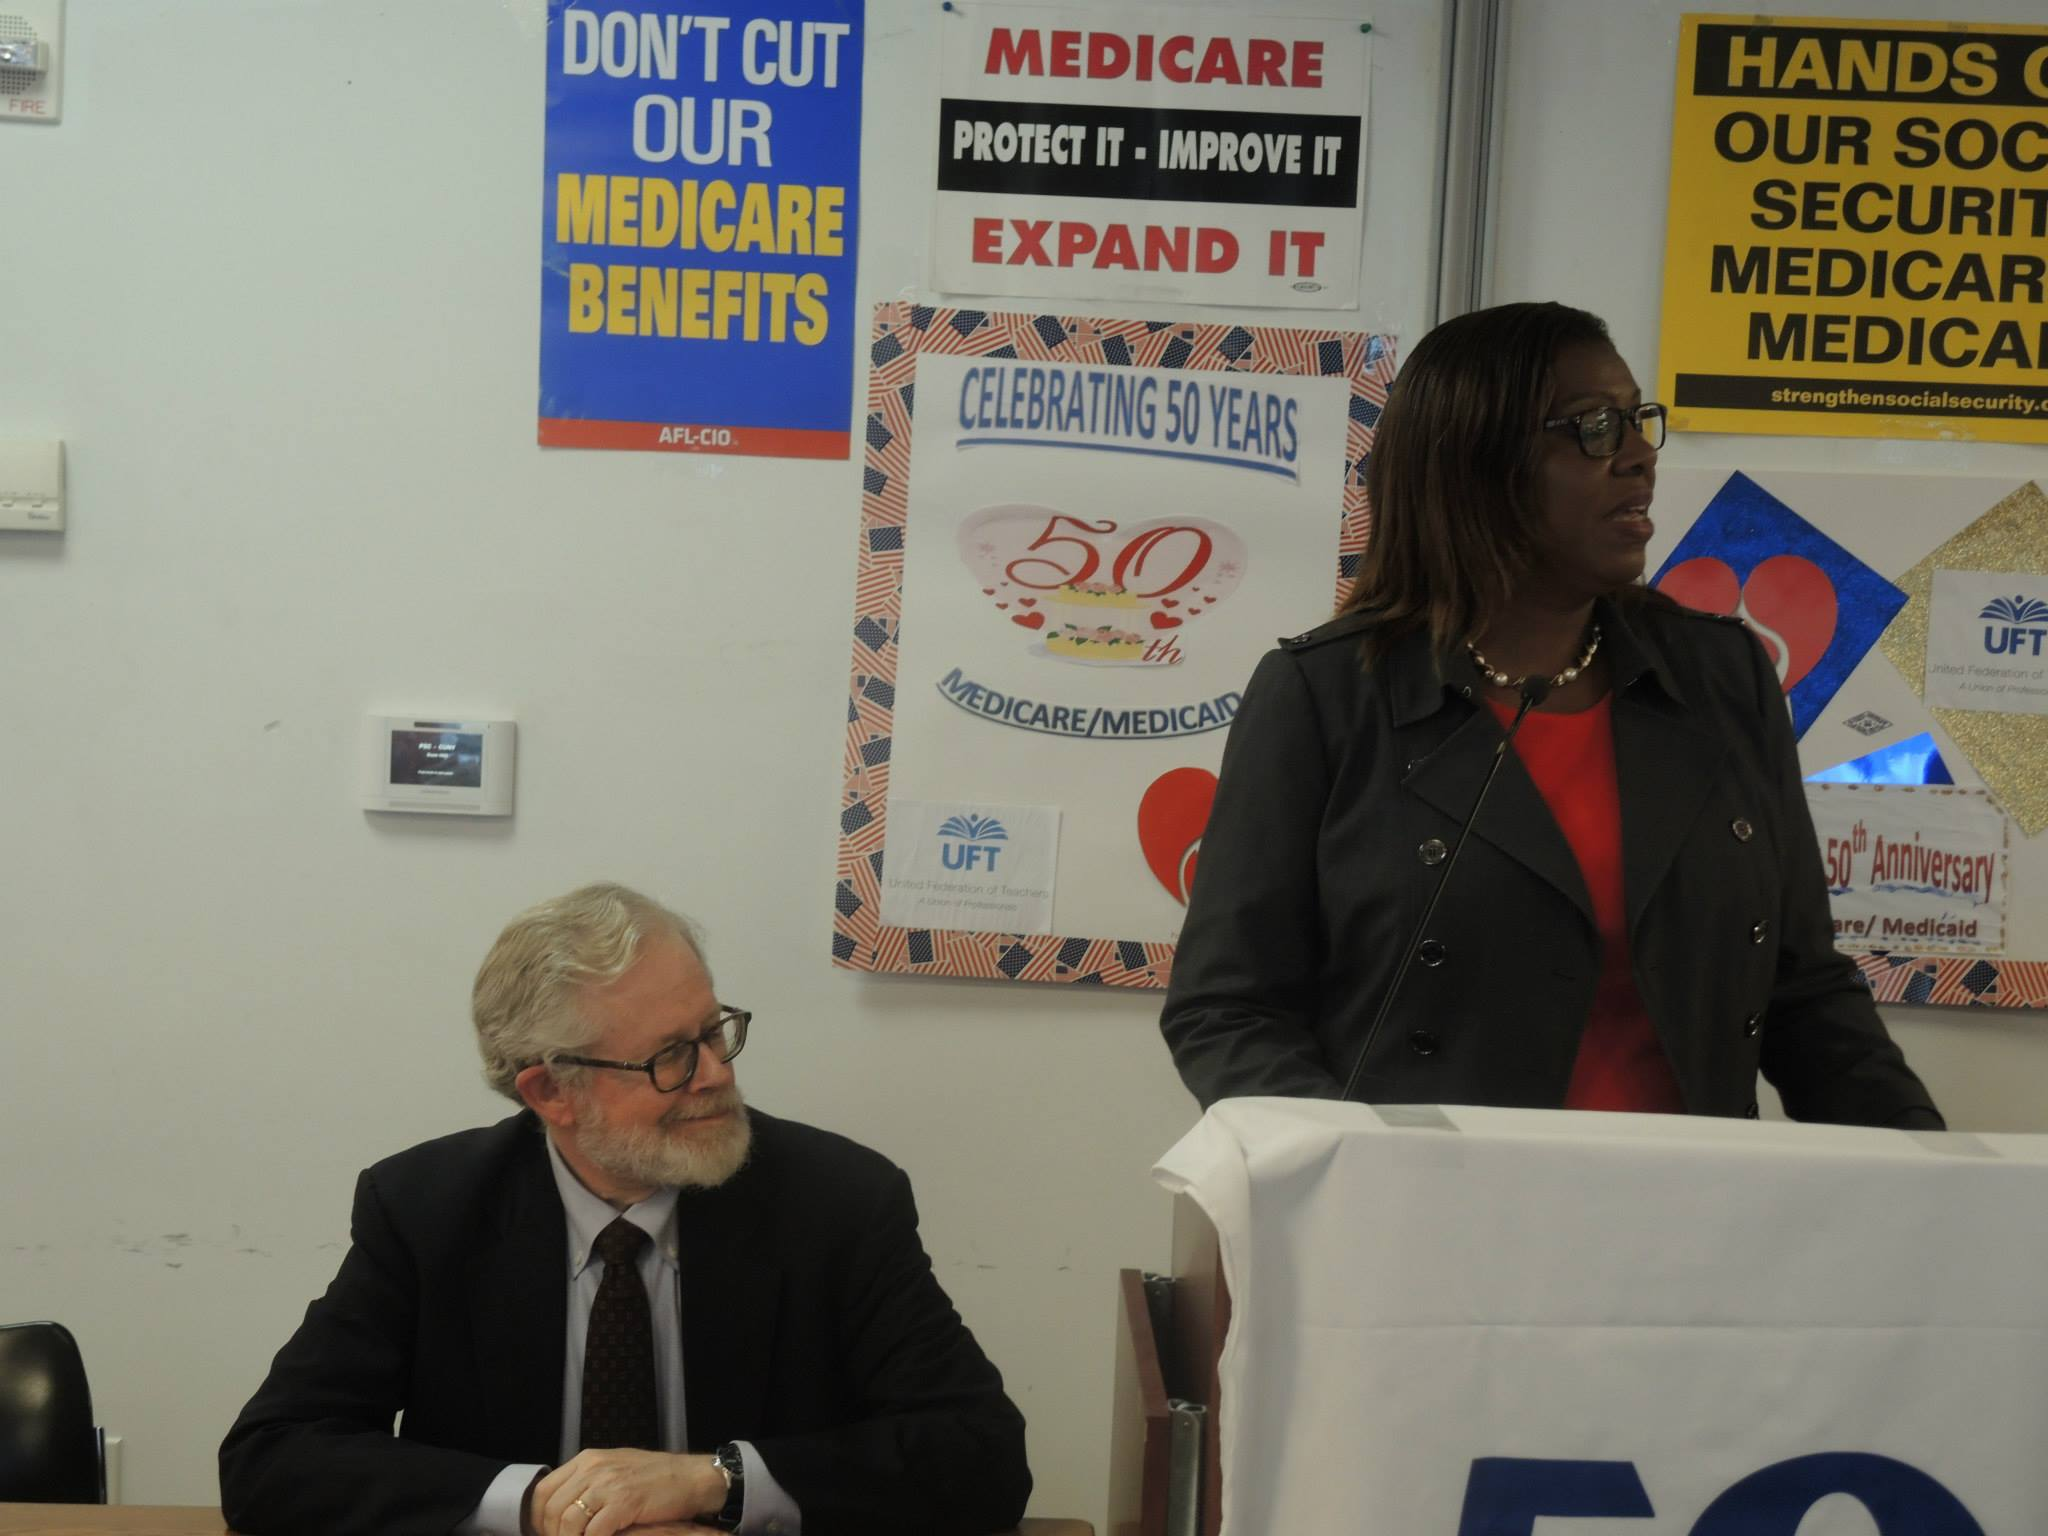 metrohealth editor metro new york health care for all campaign n velazquez l james